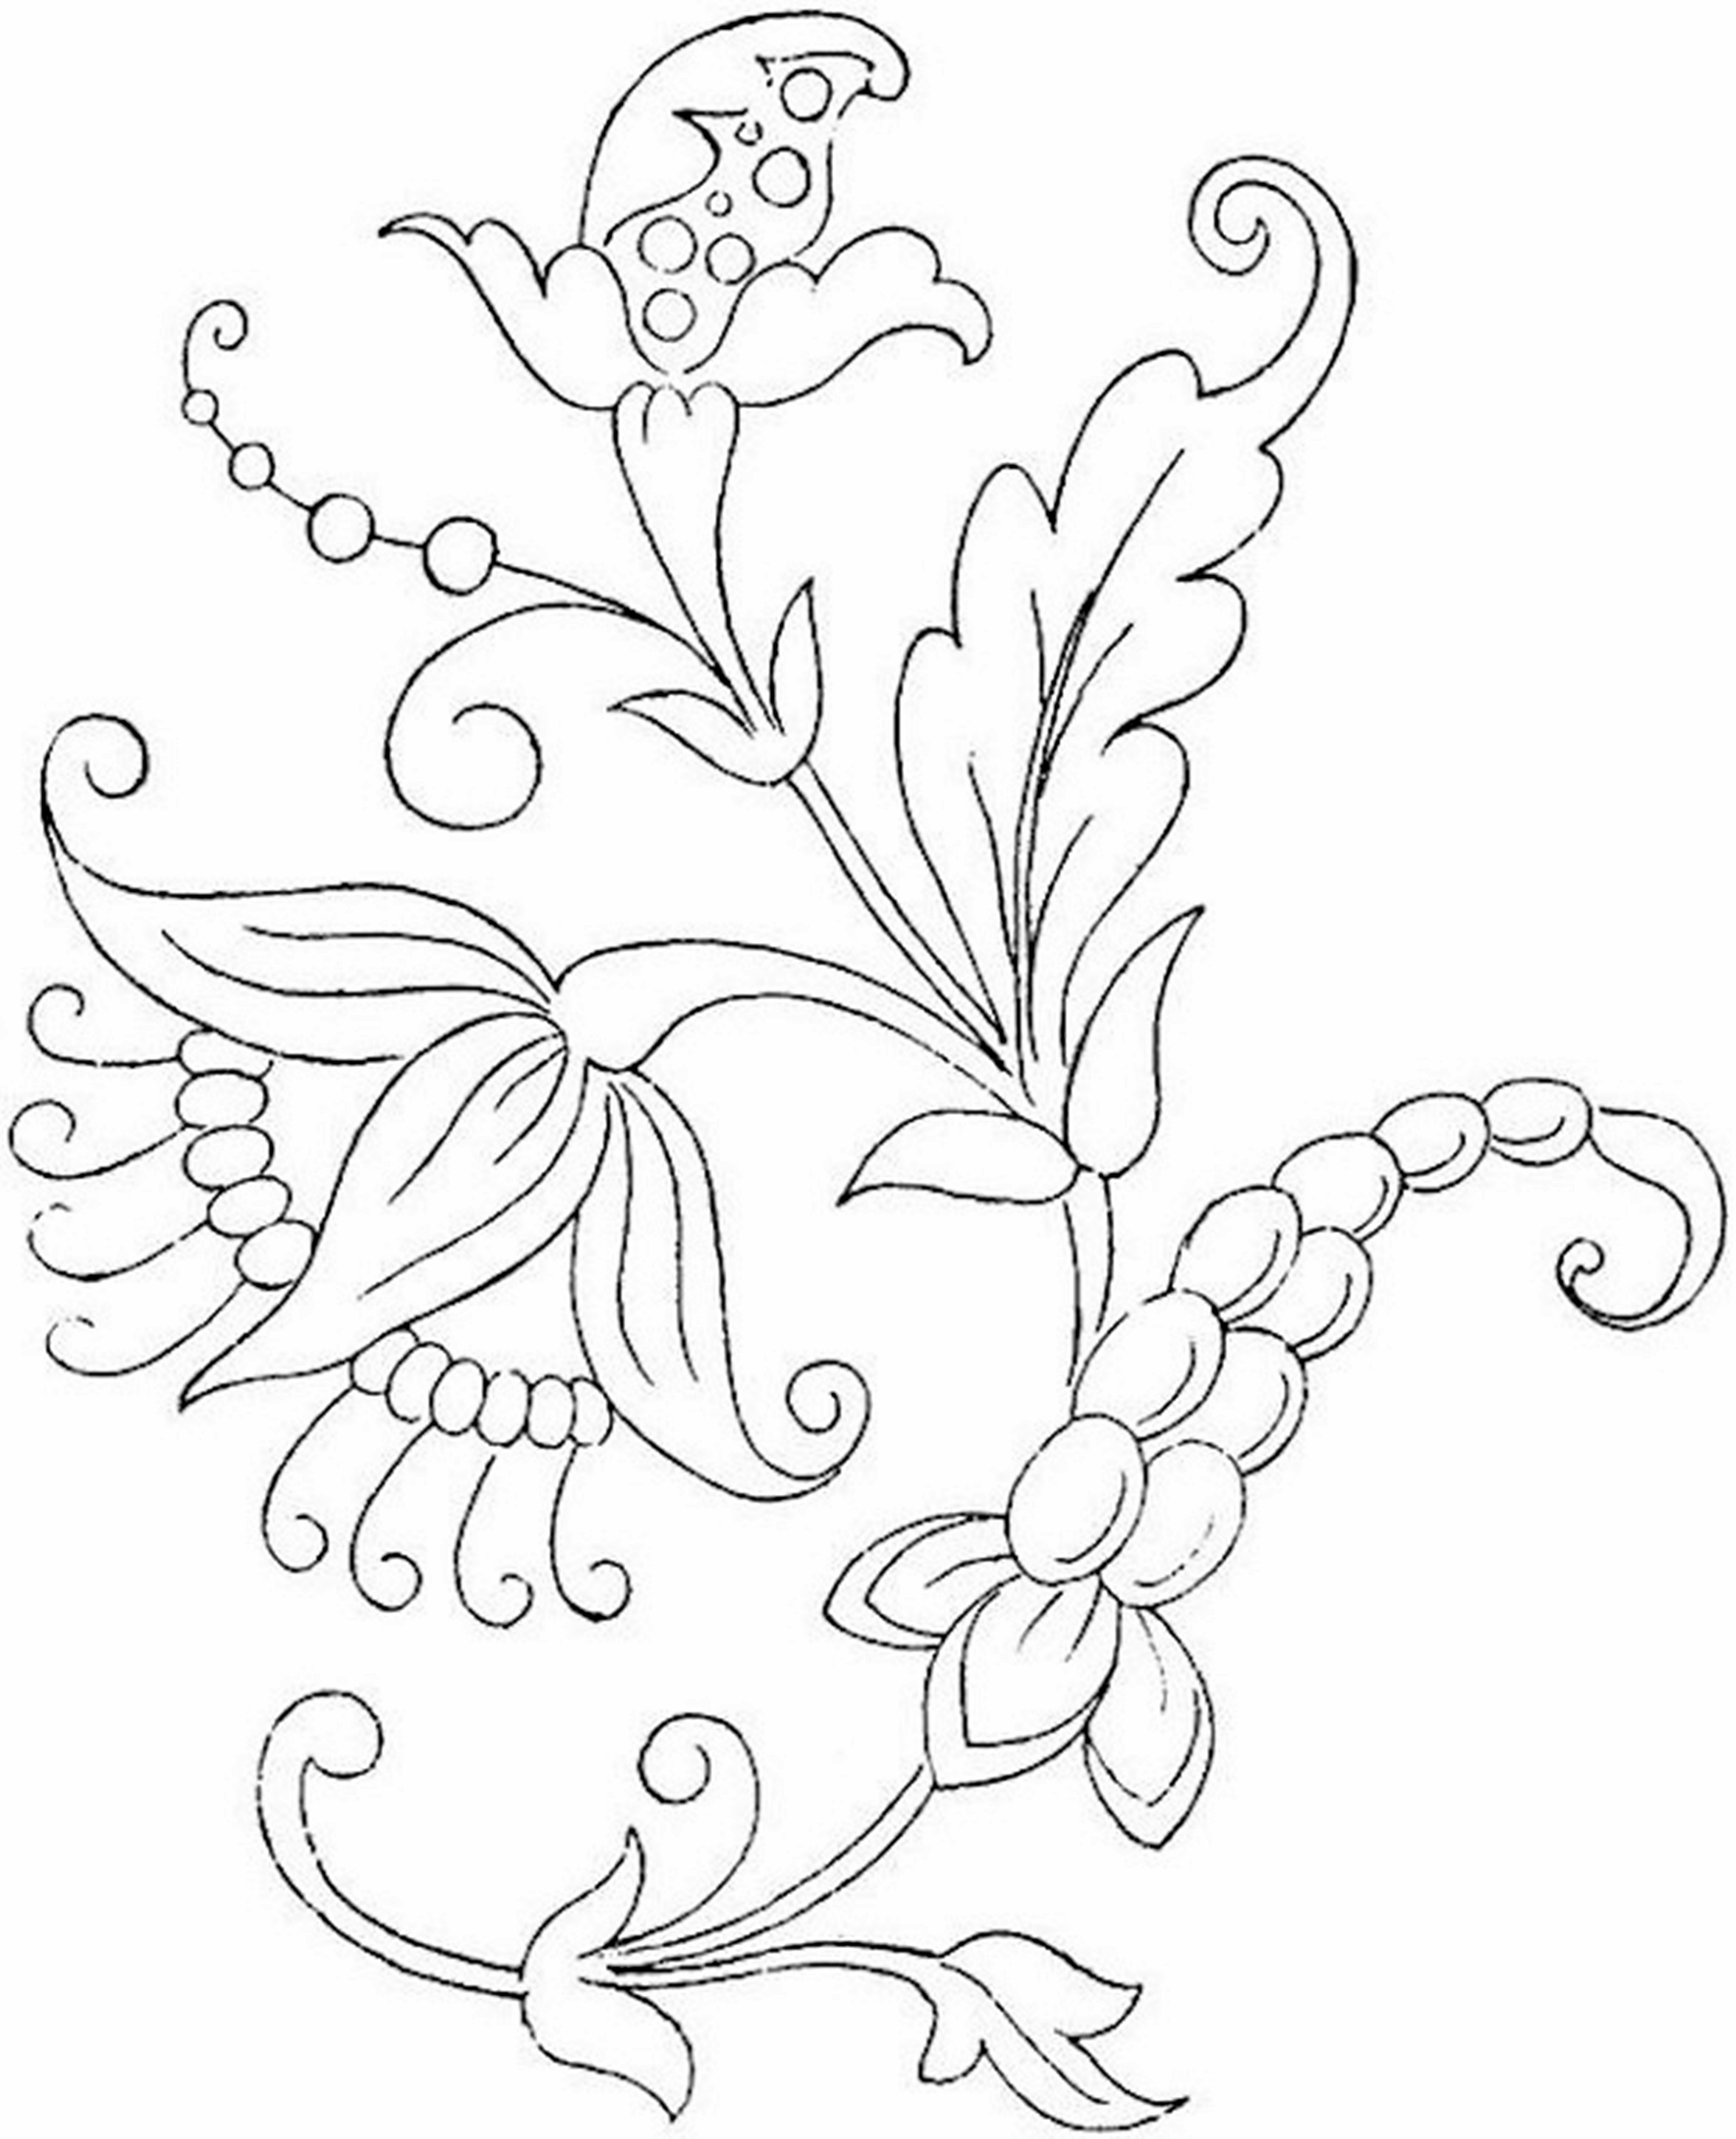 flower coloring pages to print flower coloring pages for adults best coloring pages for coloring to flower print pages